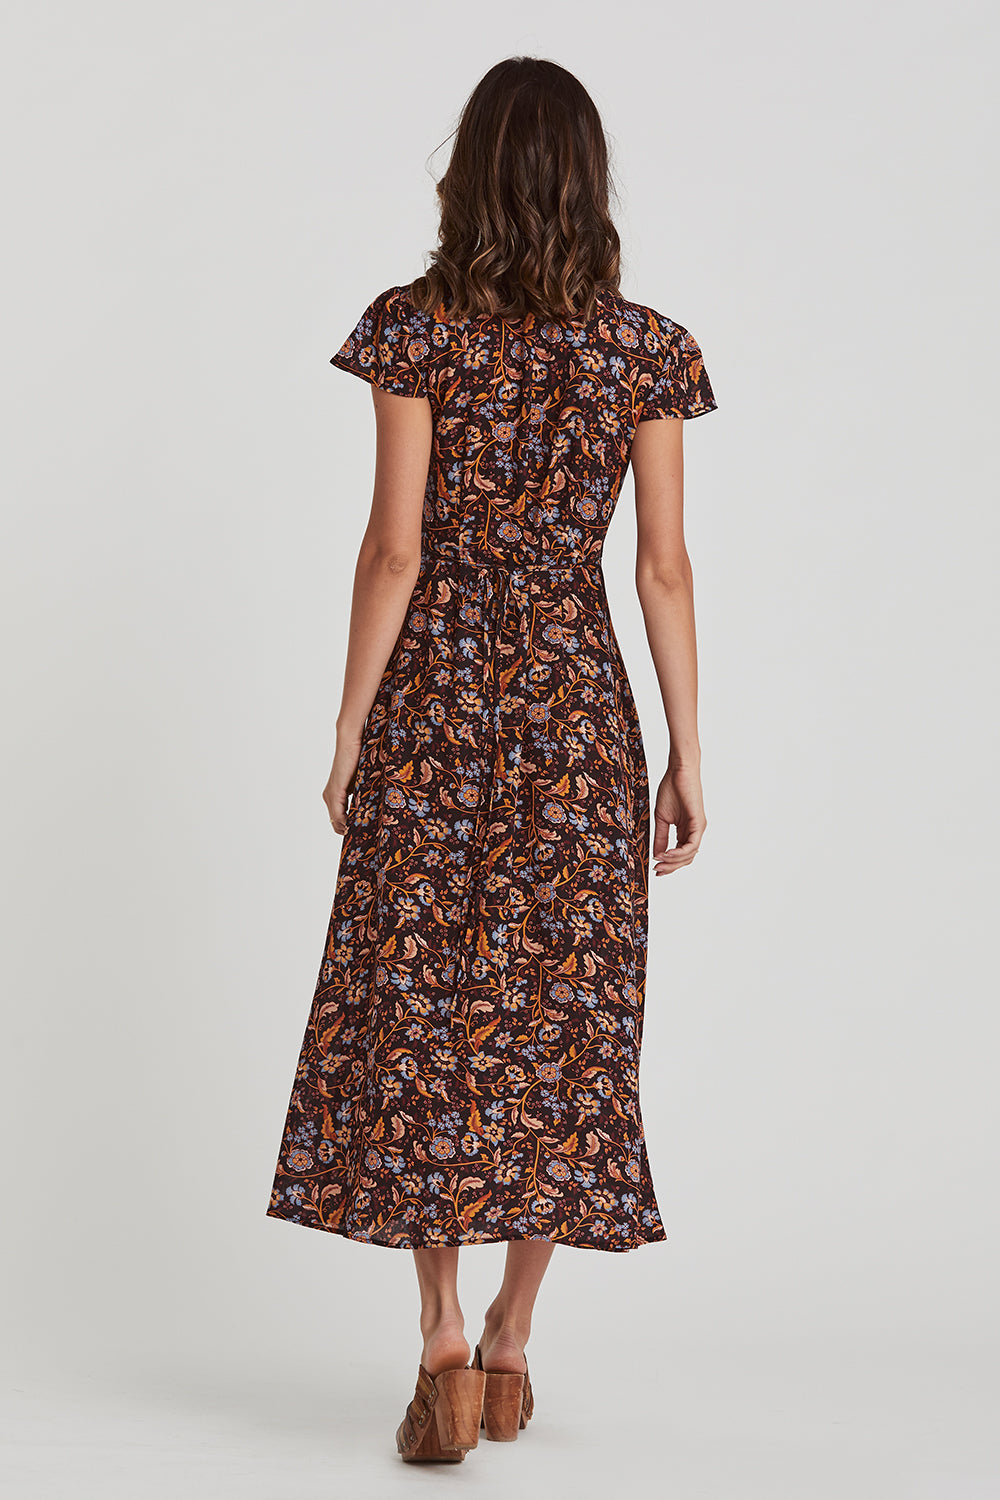 Daisy Chain Wrap Dress in Amber